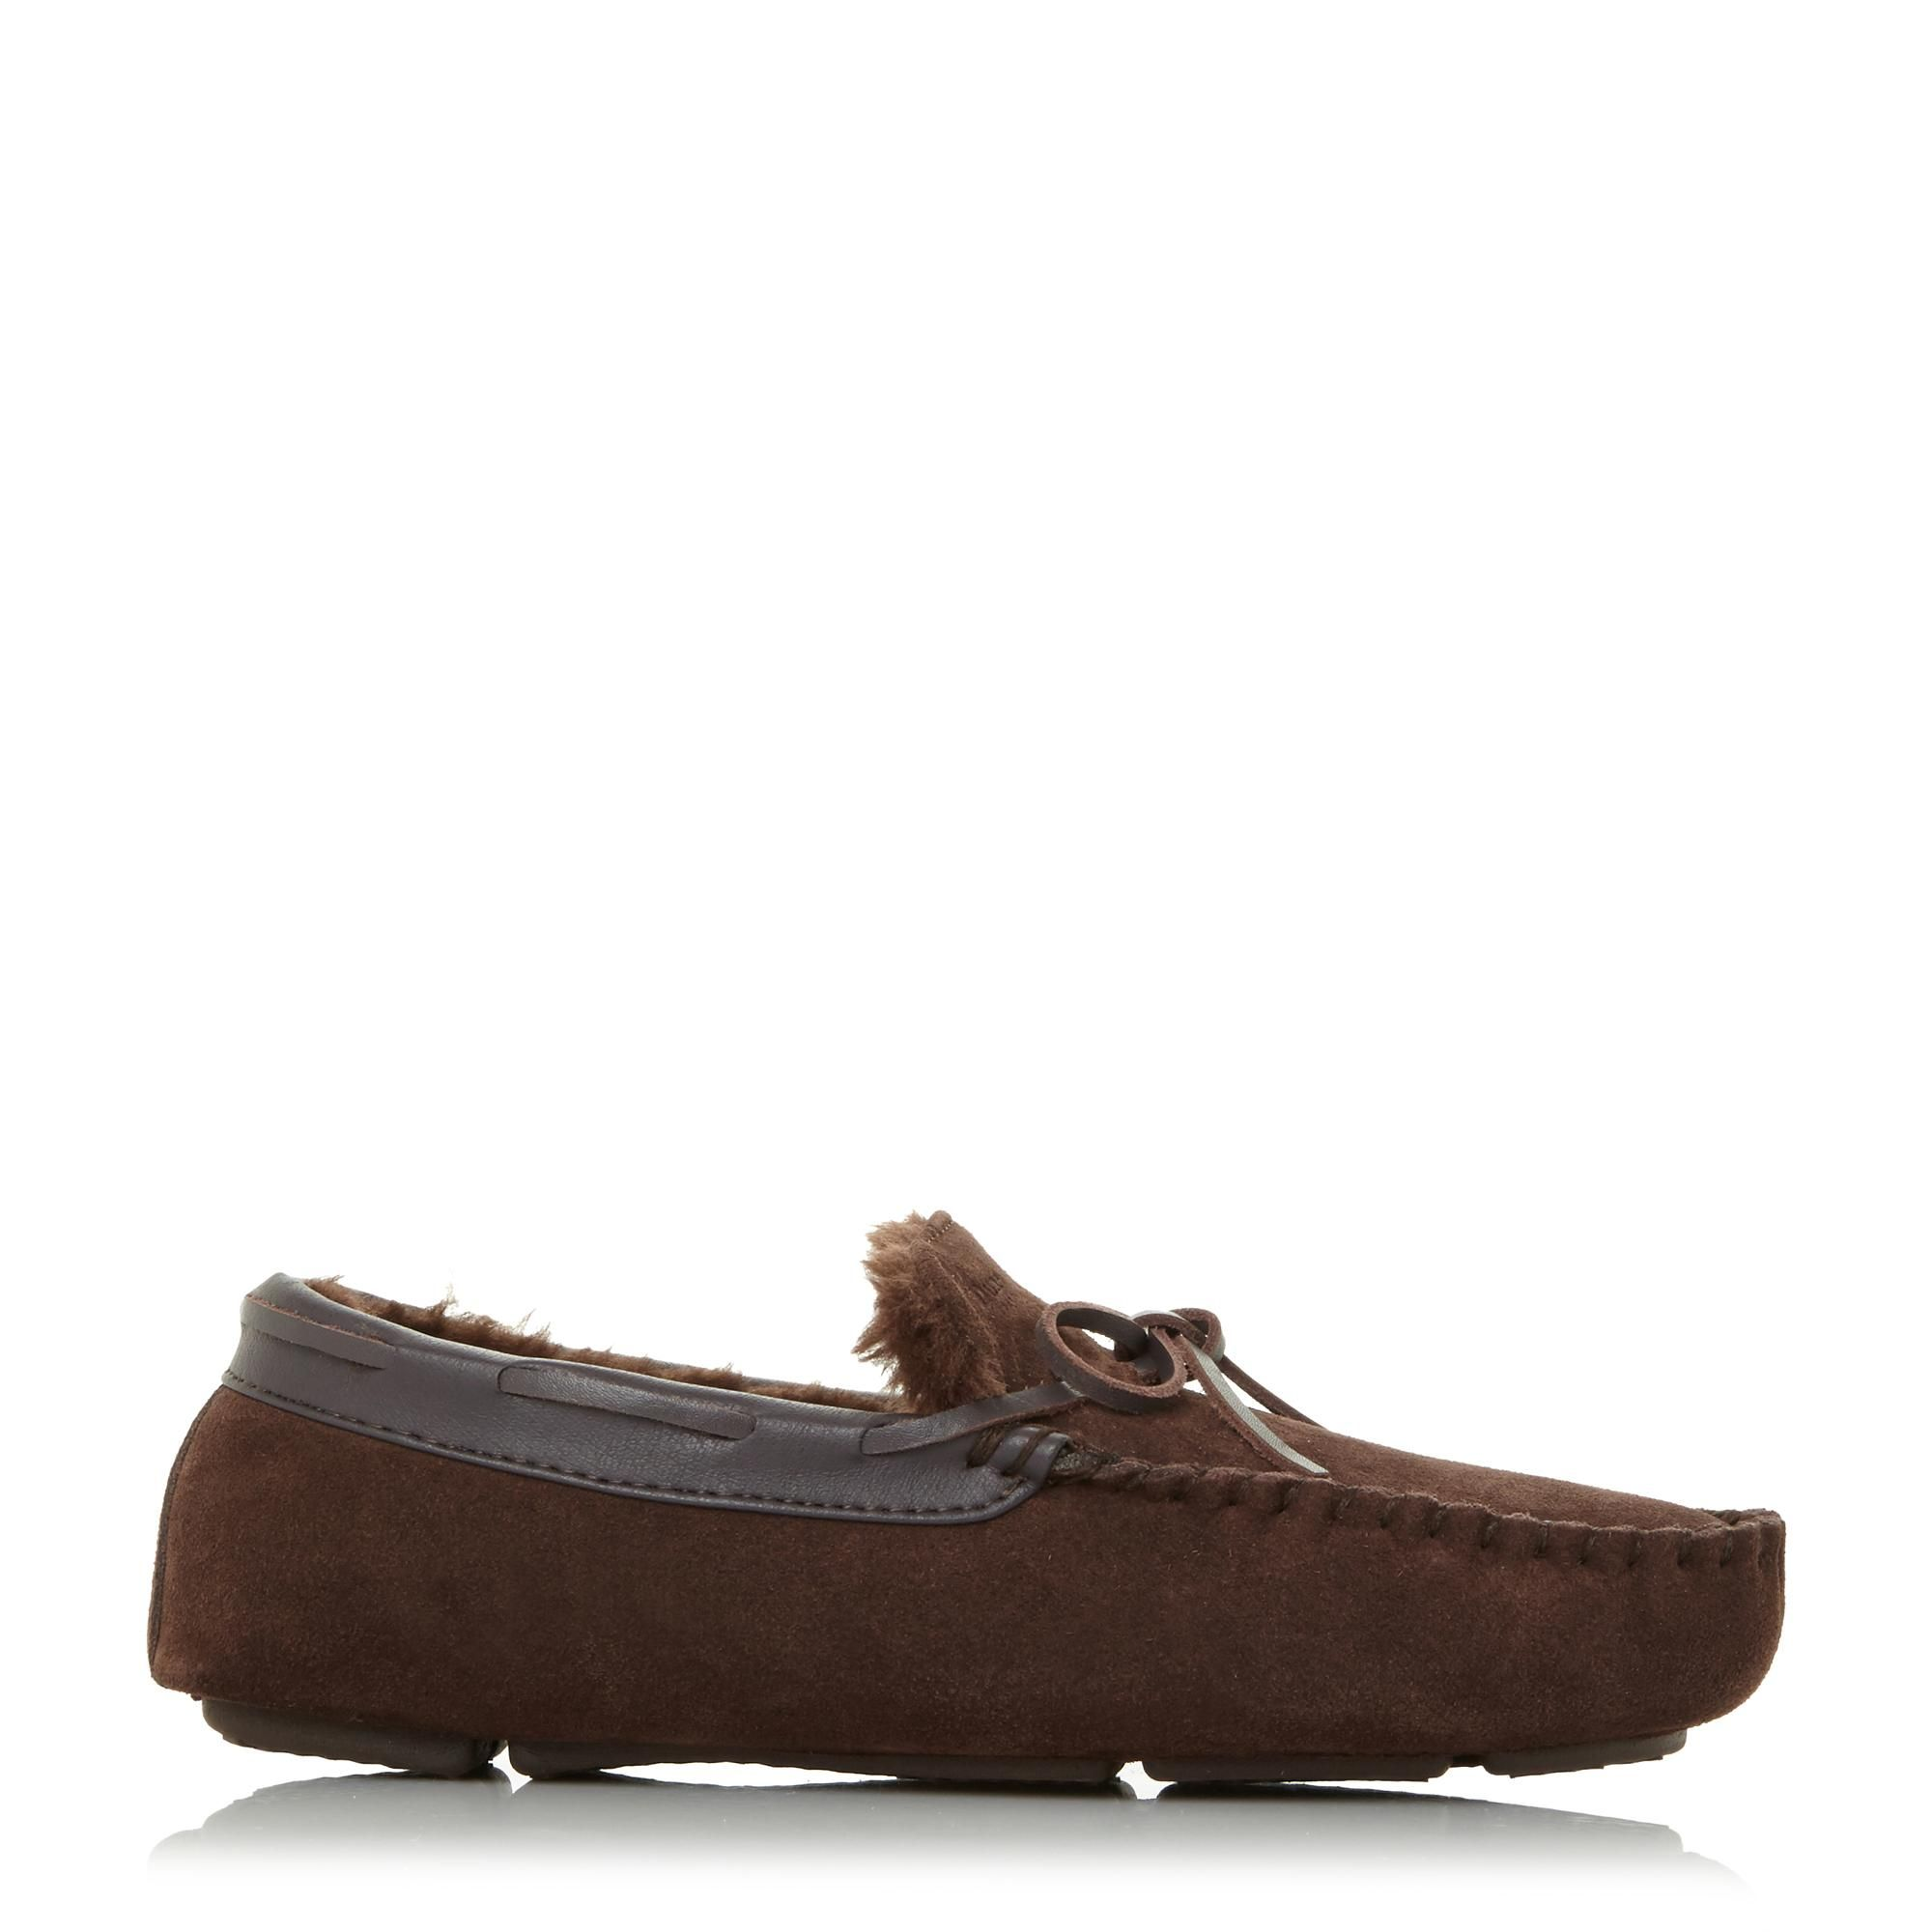 Dune Mens FREEZE Warm Lined Driver Moccasin Slipper